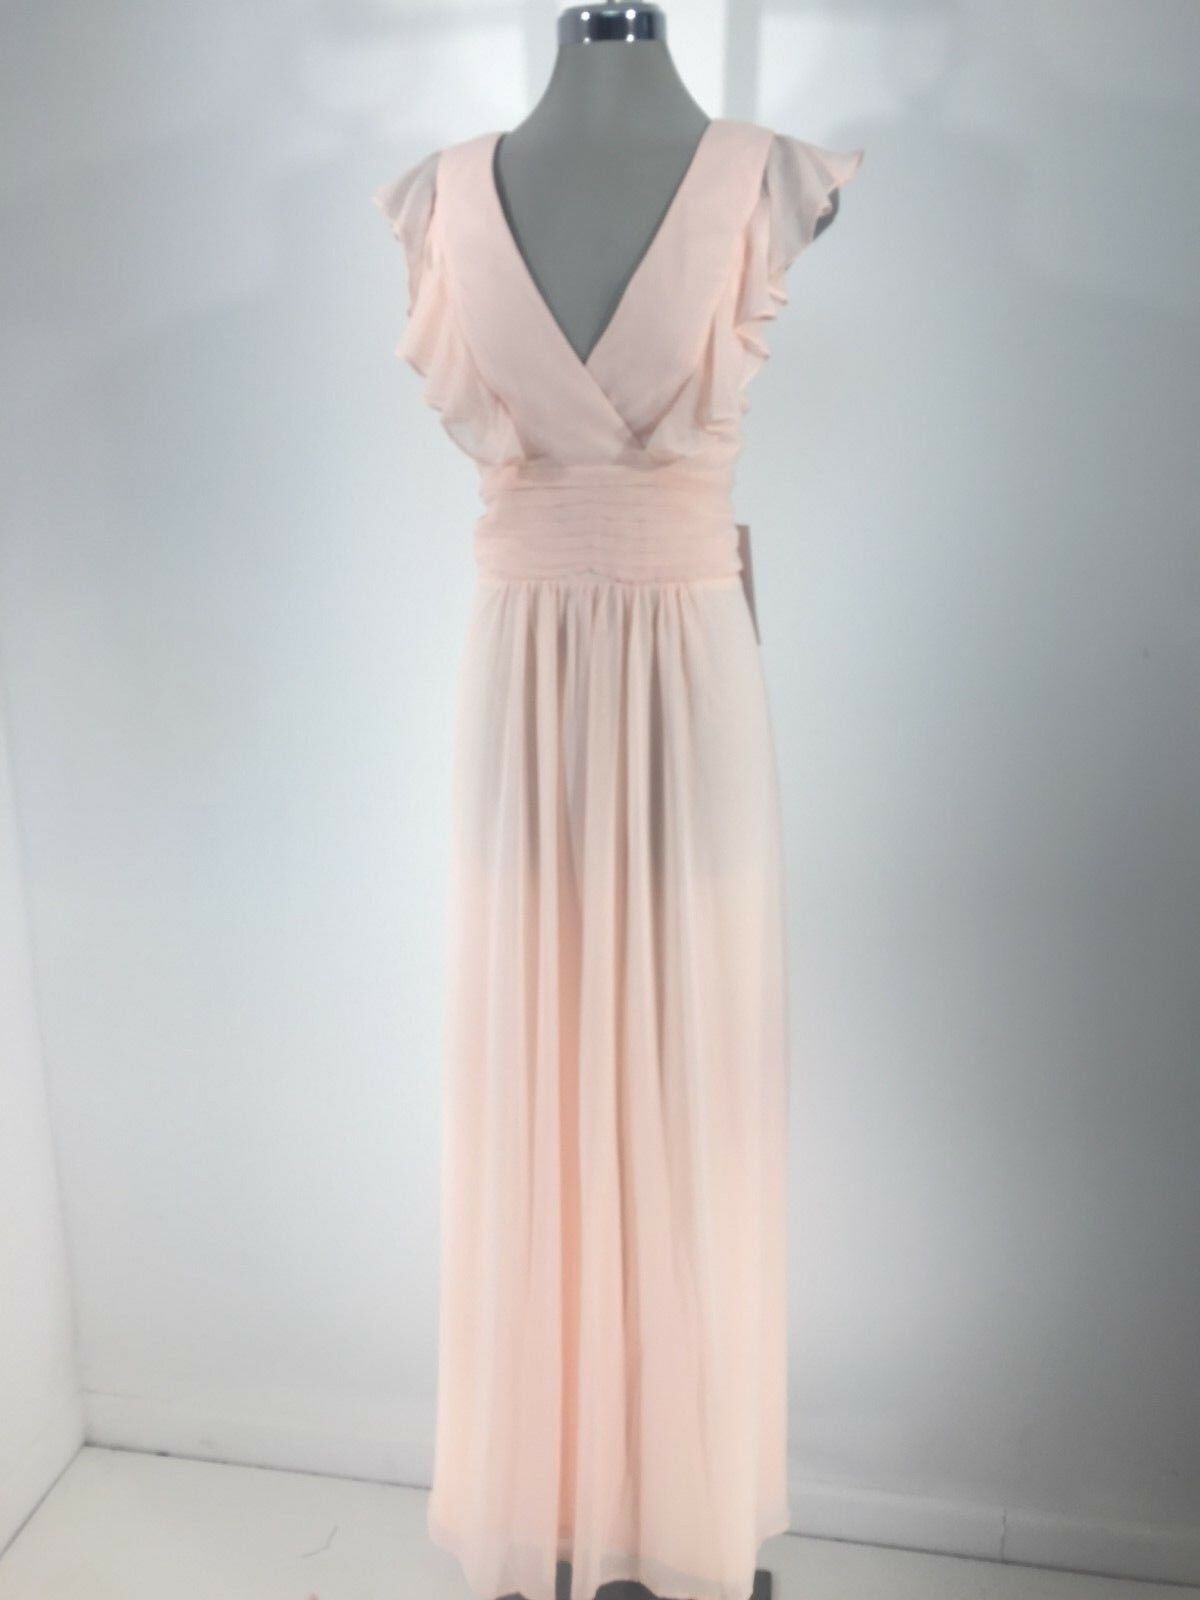 REVERIE NWT Pink Formal Women's Dress Ruffle Formal Fit & Flare size 12 14 16 18